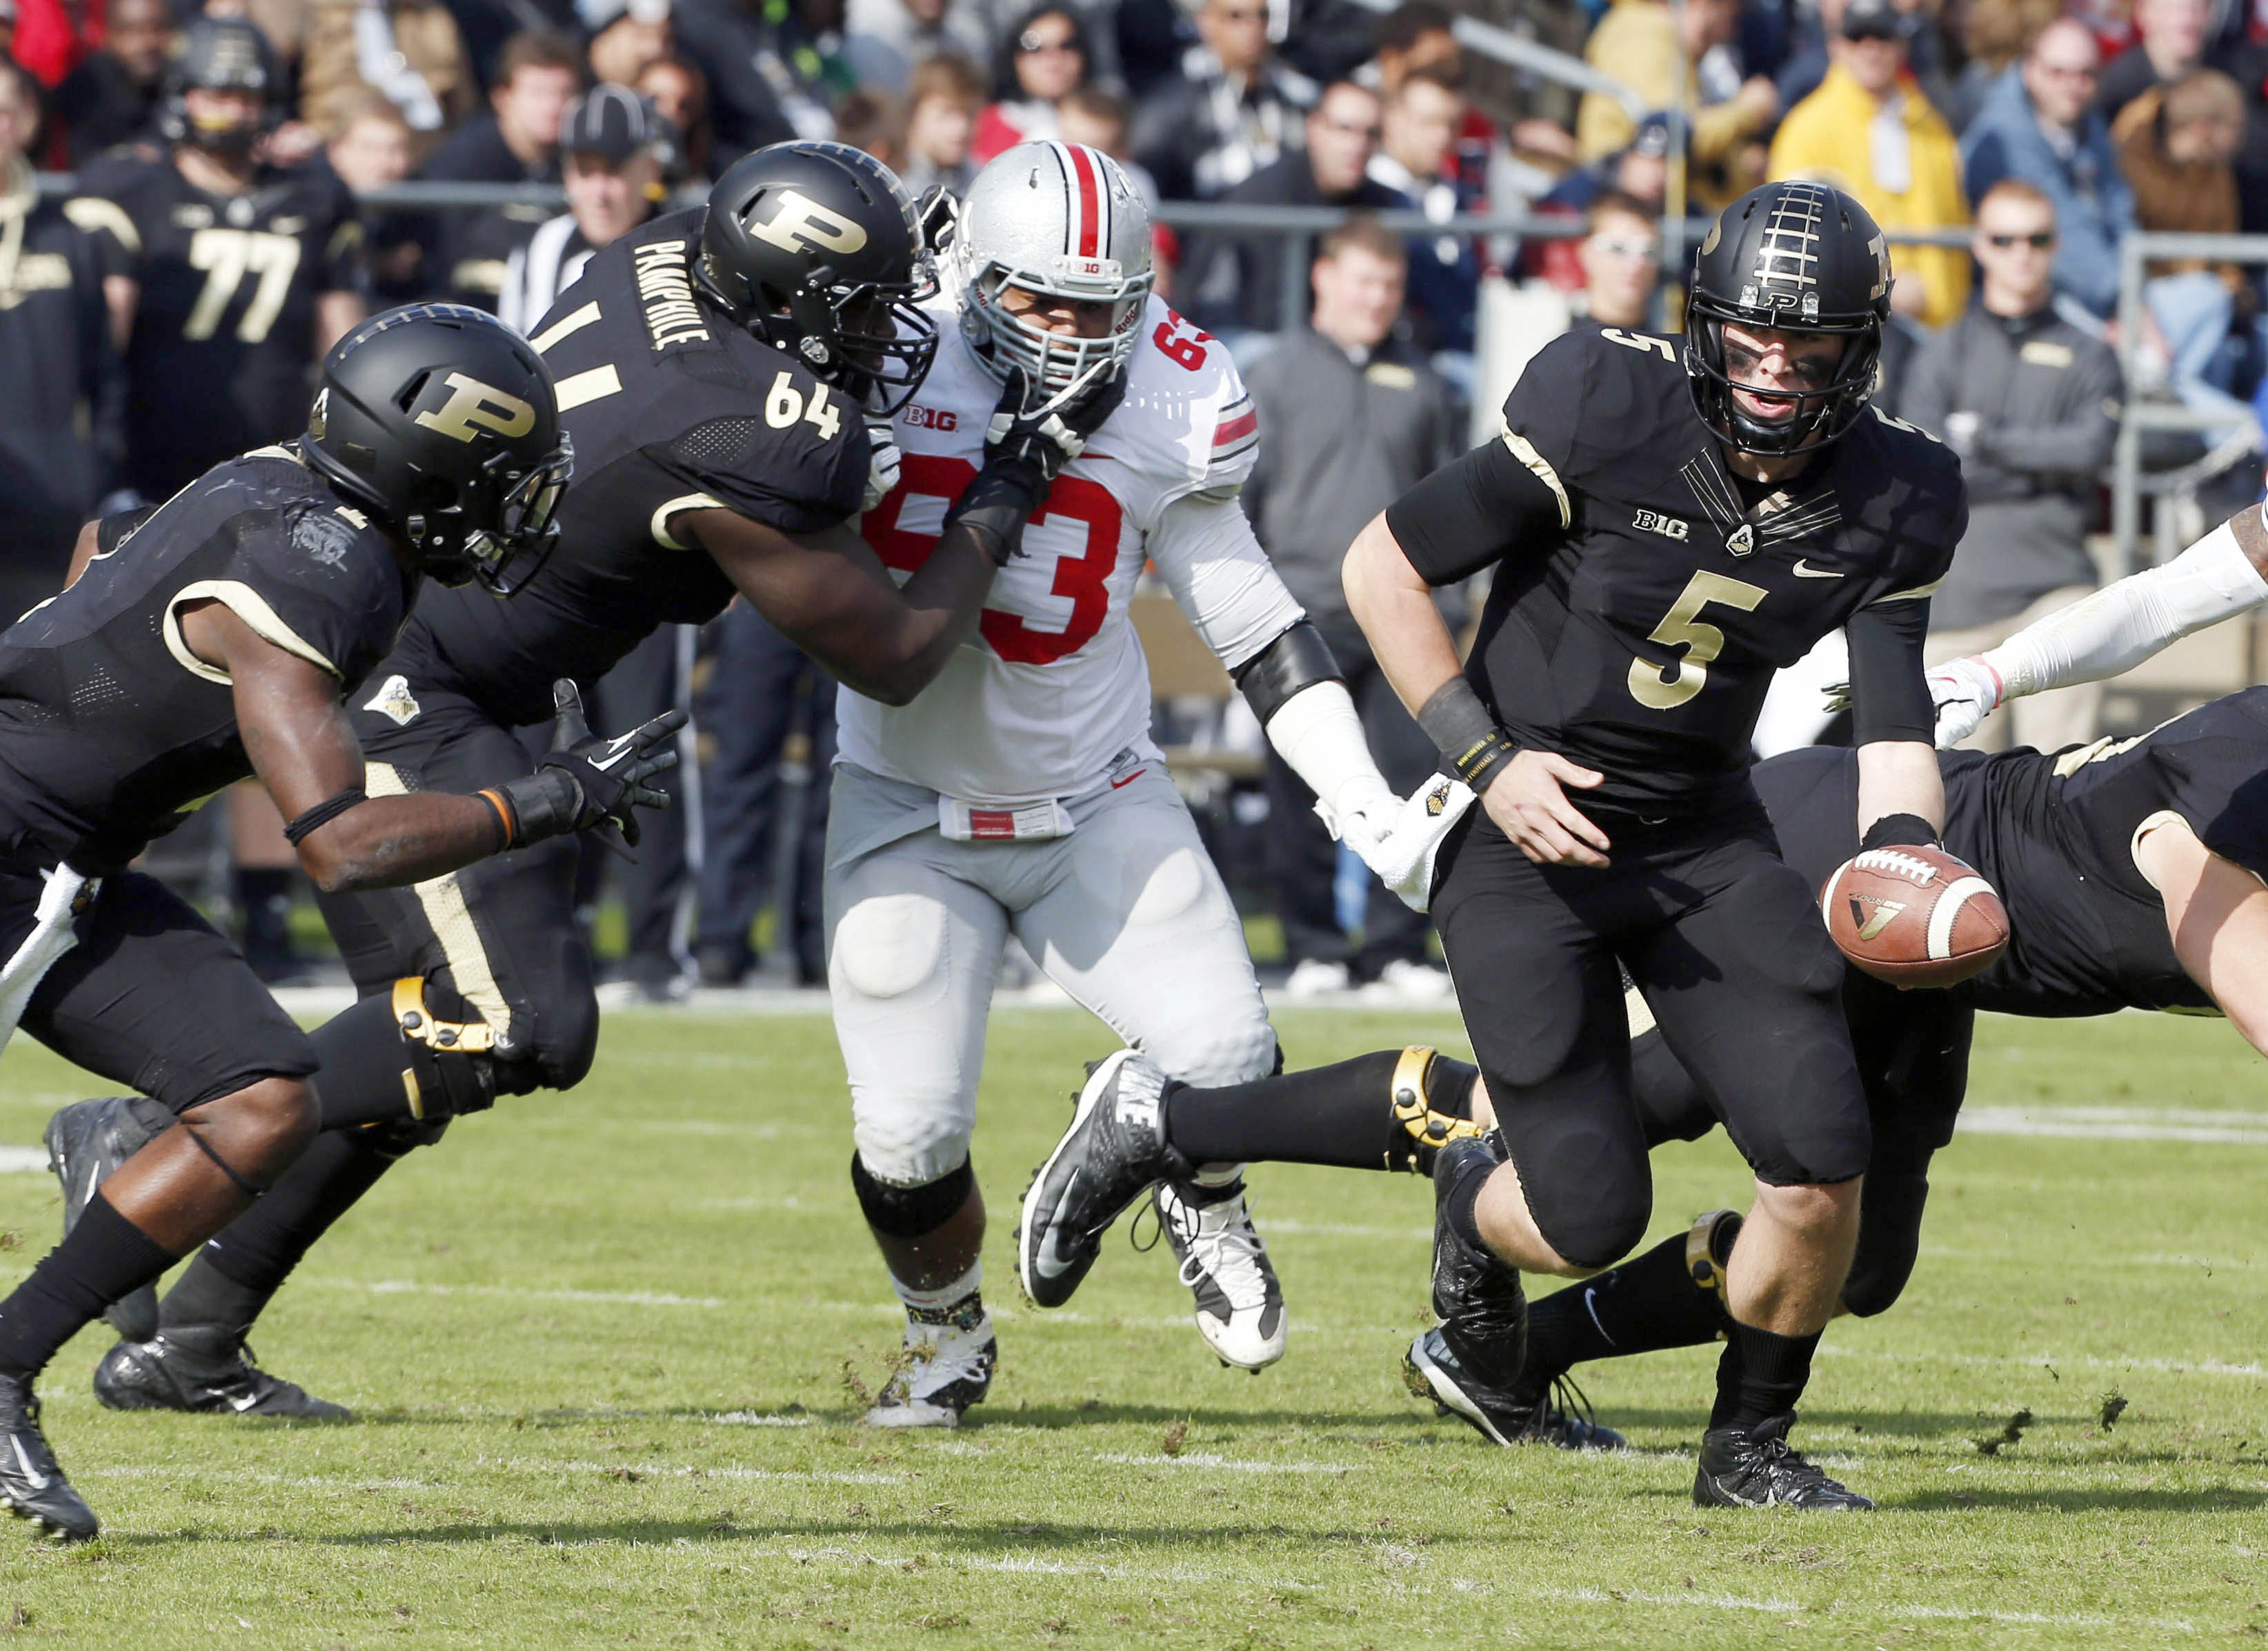 Nov 2, 2013; West Lafayette, IN, USA; Purdue Boilermakers quarterback Danny Etling (5) hands the ball off as Ohio State Buckeyes linebacker Ryan Shazier (2) breaks through the line of scrimmage at Ross Ade Stadium. Ohio State defeats Purdue 56-0. Mandatory Credit: Brian Spurlock-USA TODAY Sports